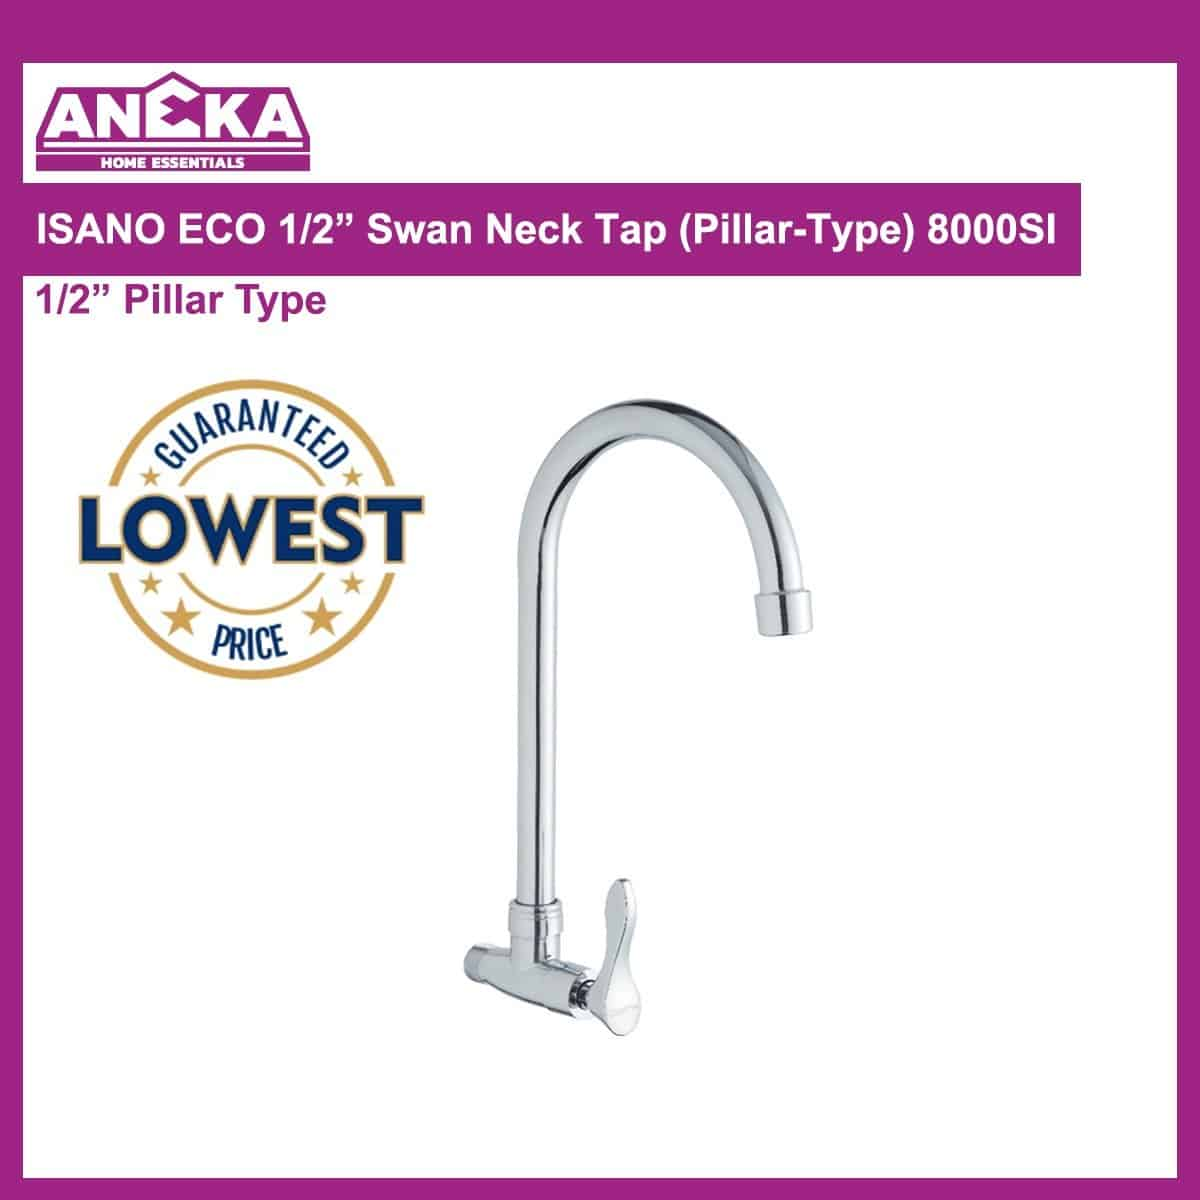 "ISANO ECO 1/2"" Swan Neck Tap (Wall-Type) 8000SS"